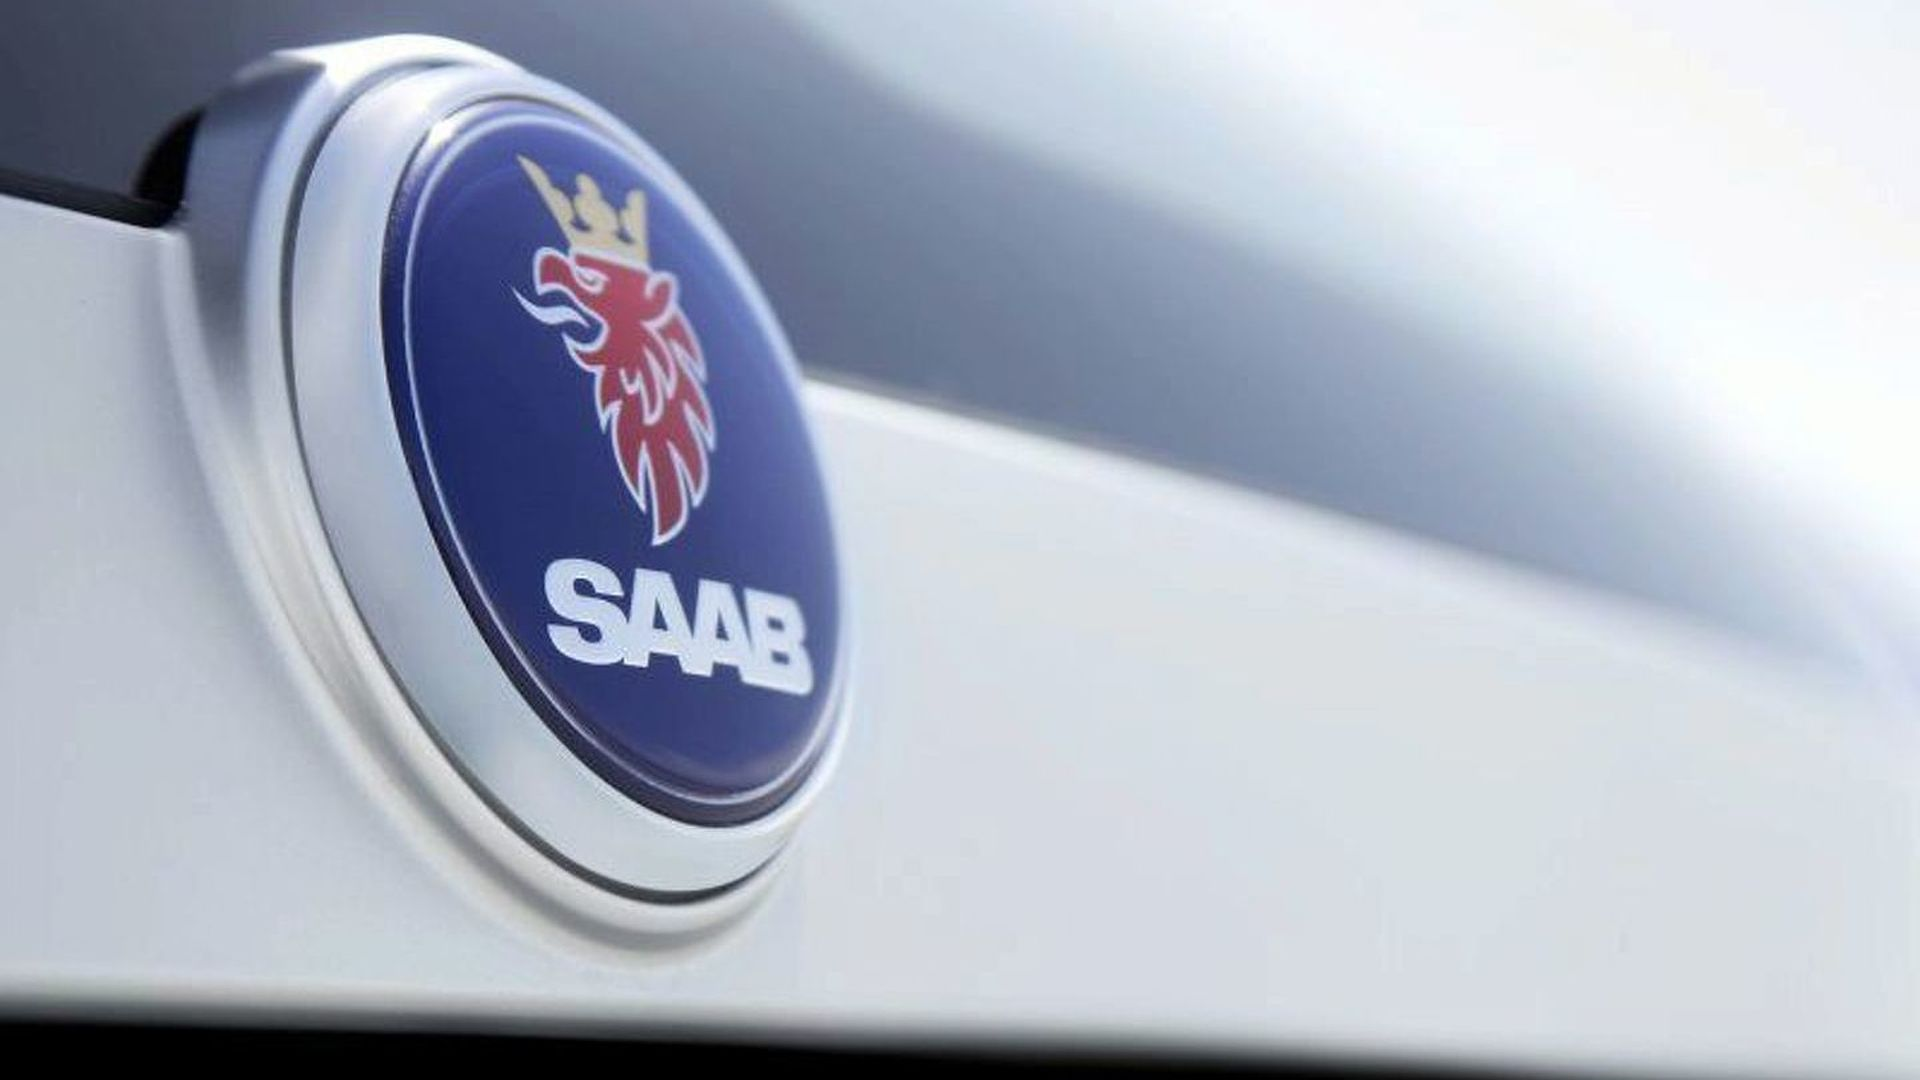 NEVS granted creditor protection, might lose right to Saab name